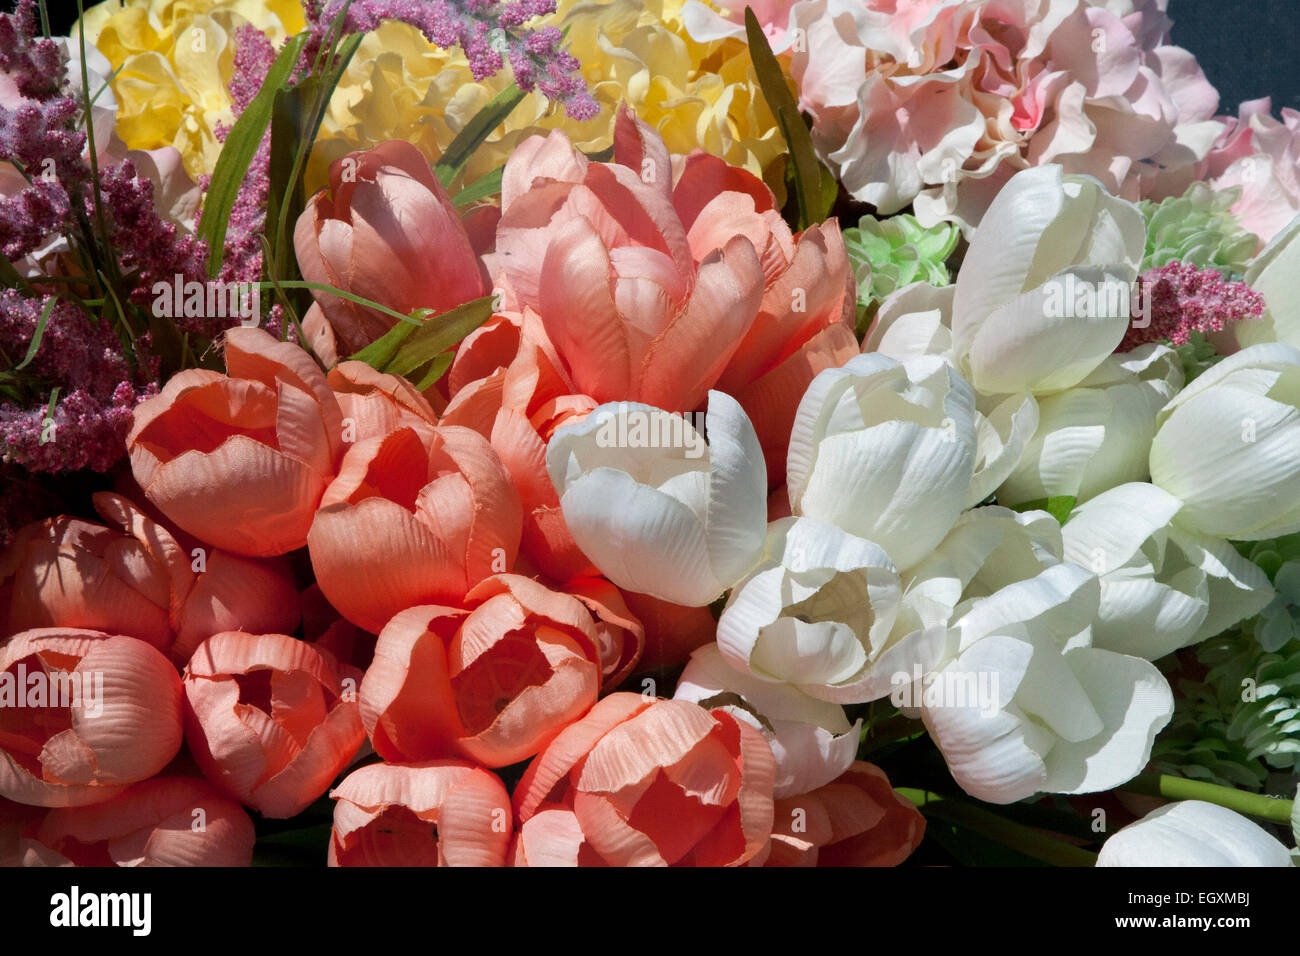 Fake tulips stock photos fake tulips stock images alamy fake spring flowers in a shop window in hayes valley san francisco california mightylinksfo